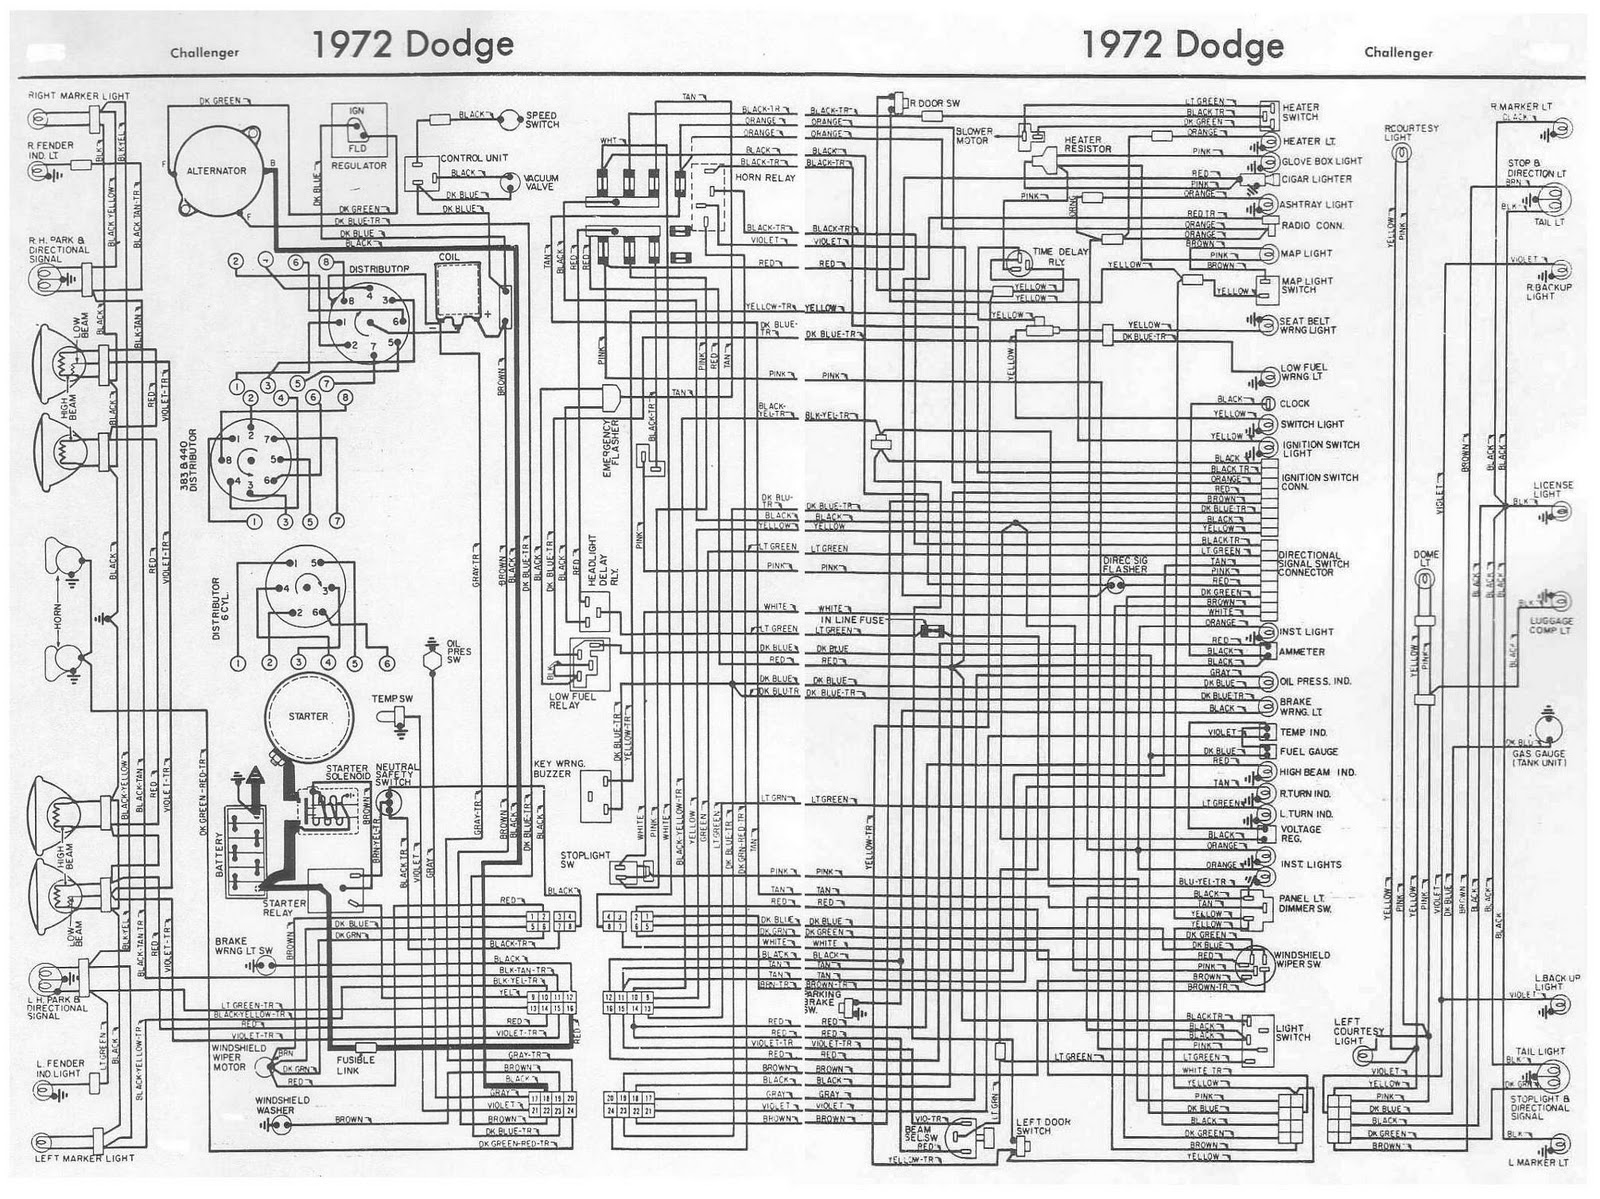 1954 dodge wiring diagram dodge challenger wiring diagram dodge wiring diagrams online